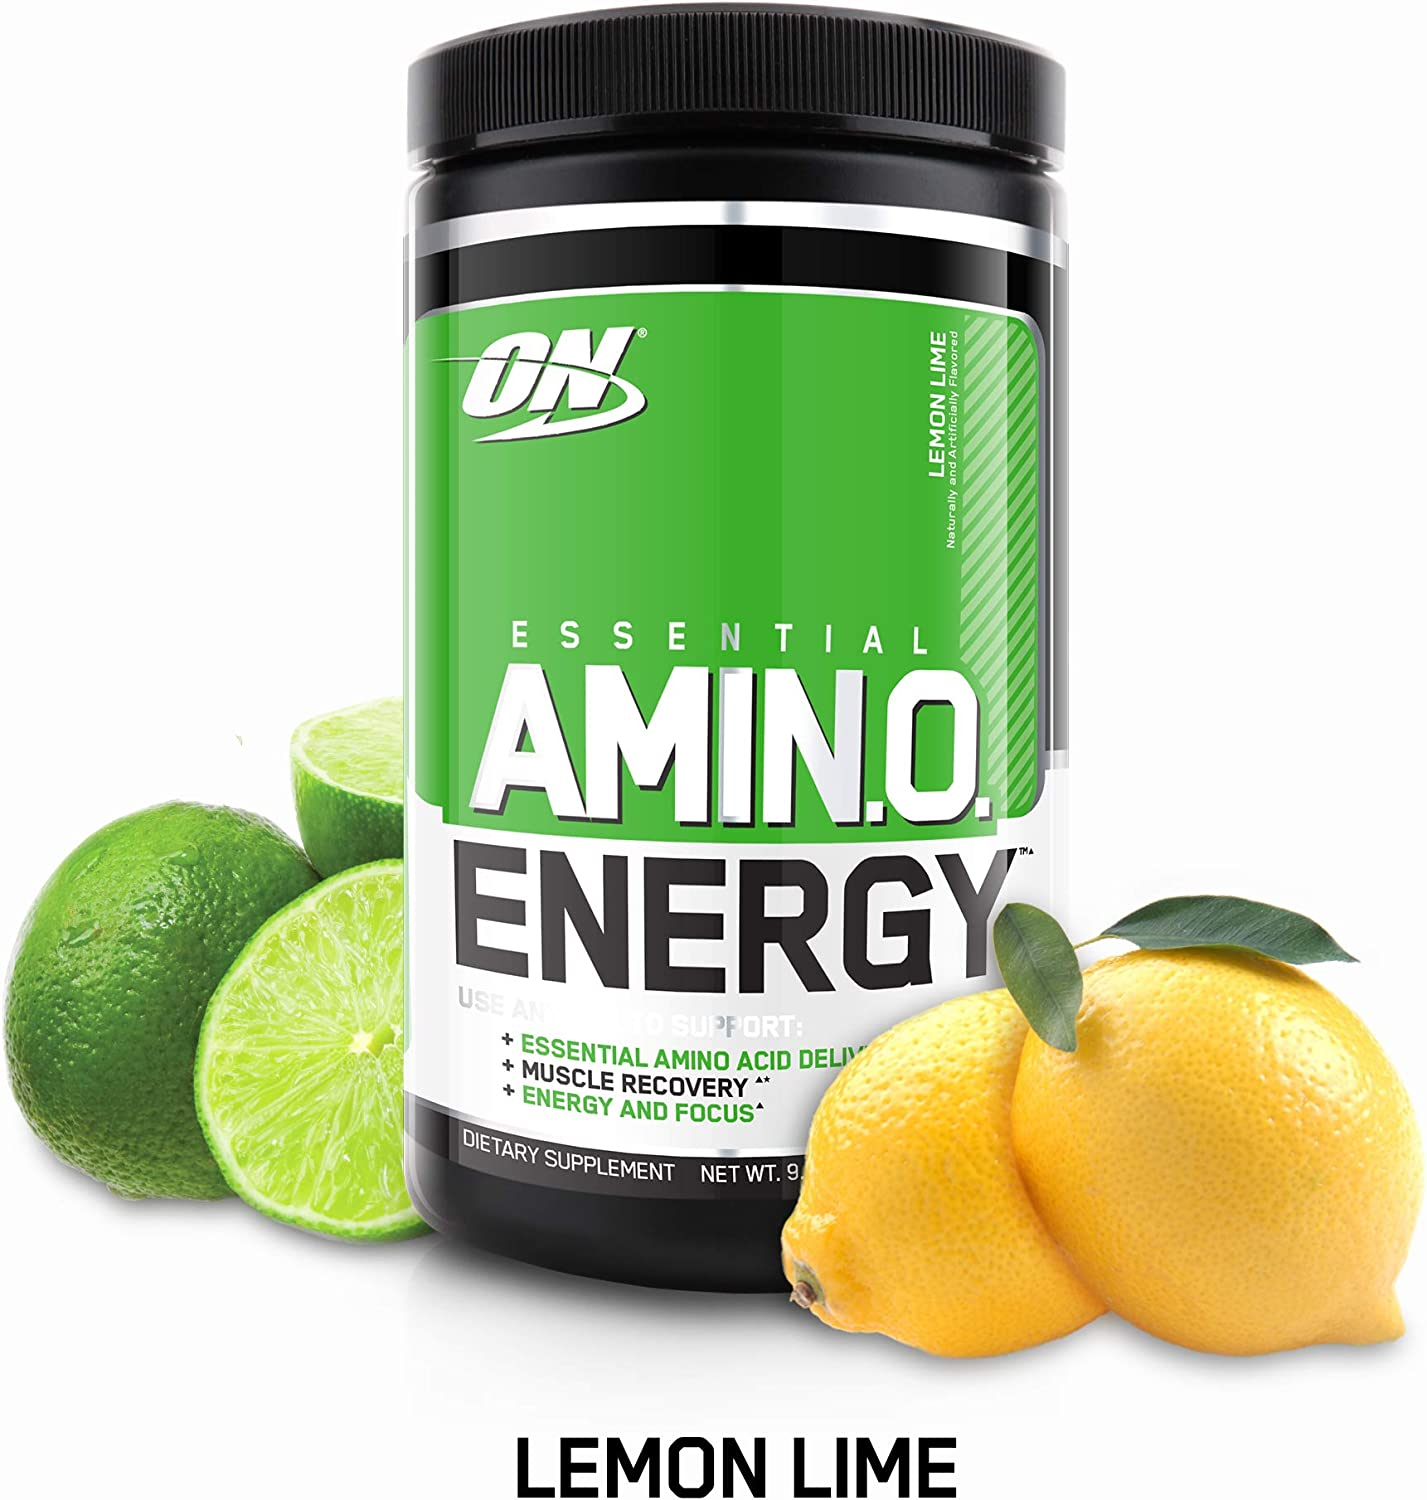 OPTIMUM NUTRITION ESSENTIAL AMINO ENERGY, Lemon Lime, Keto Friendly BCAAs, Preworkout and Essential Amino Acids with Green Tea and Green Coffee Extract, 30 Servings, 9.5 Ounce (Pack of 1)